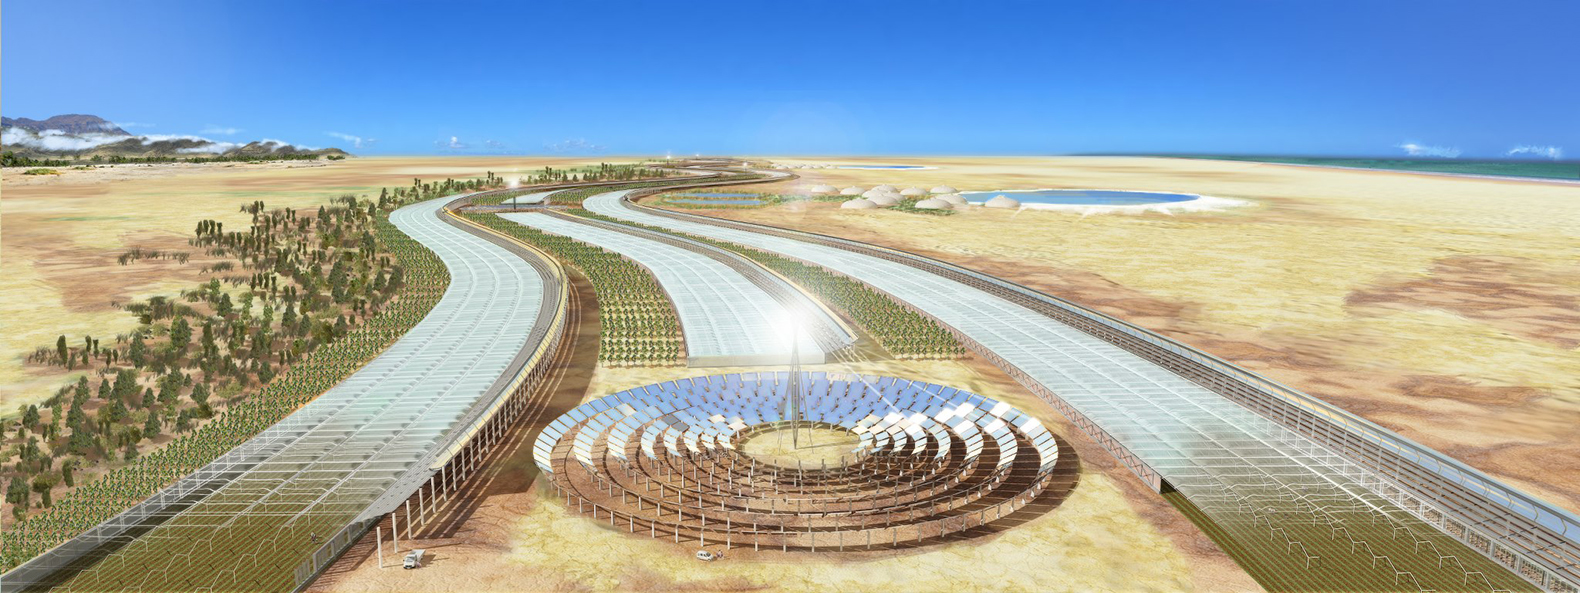 Sahara Desert Project to grow 10 hectares of food in Tunisian desert